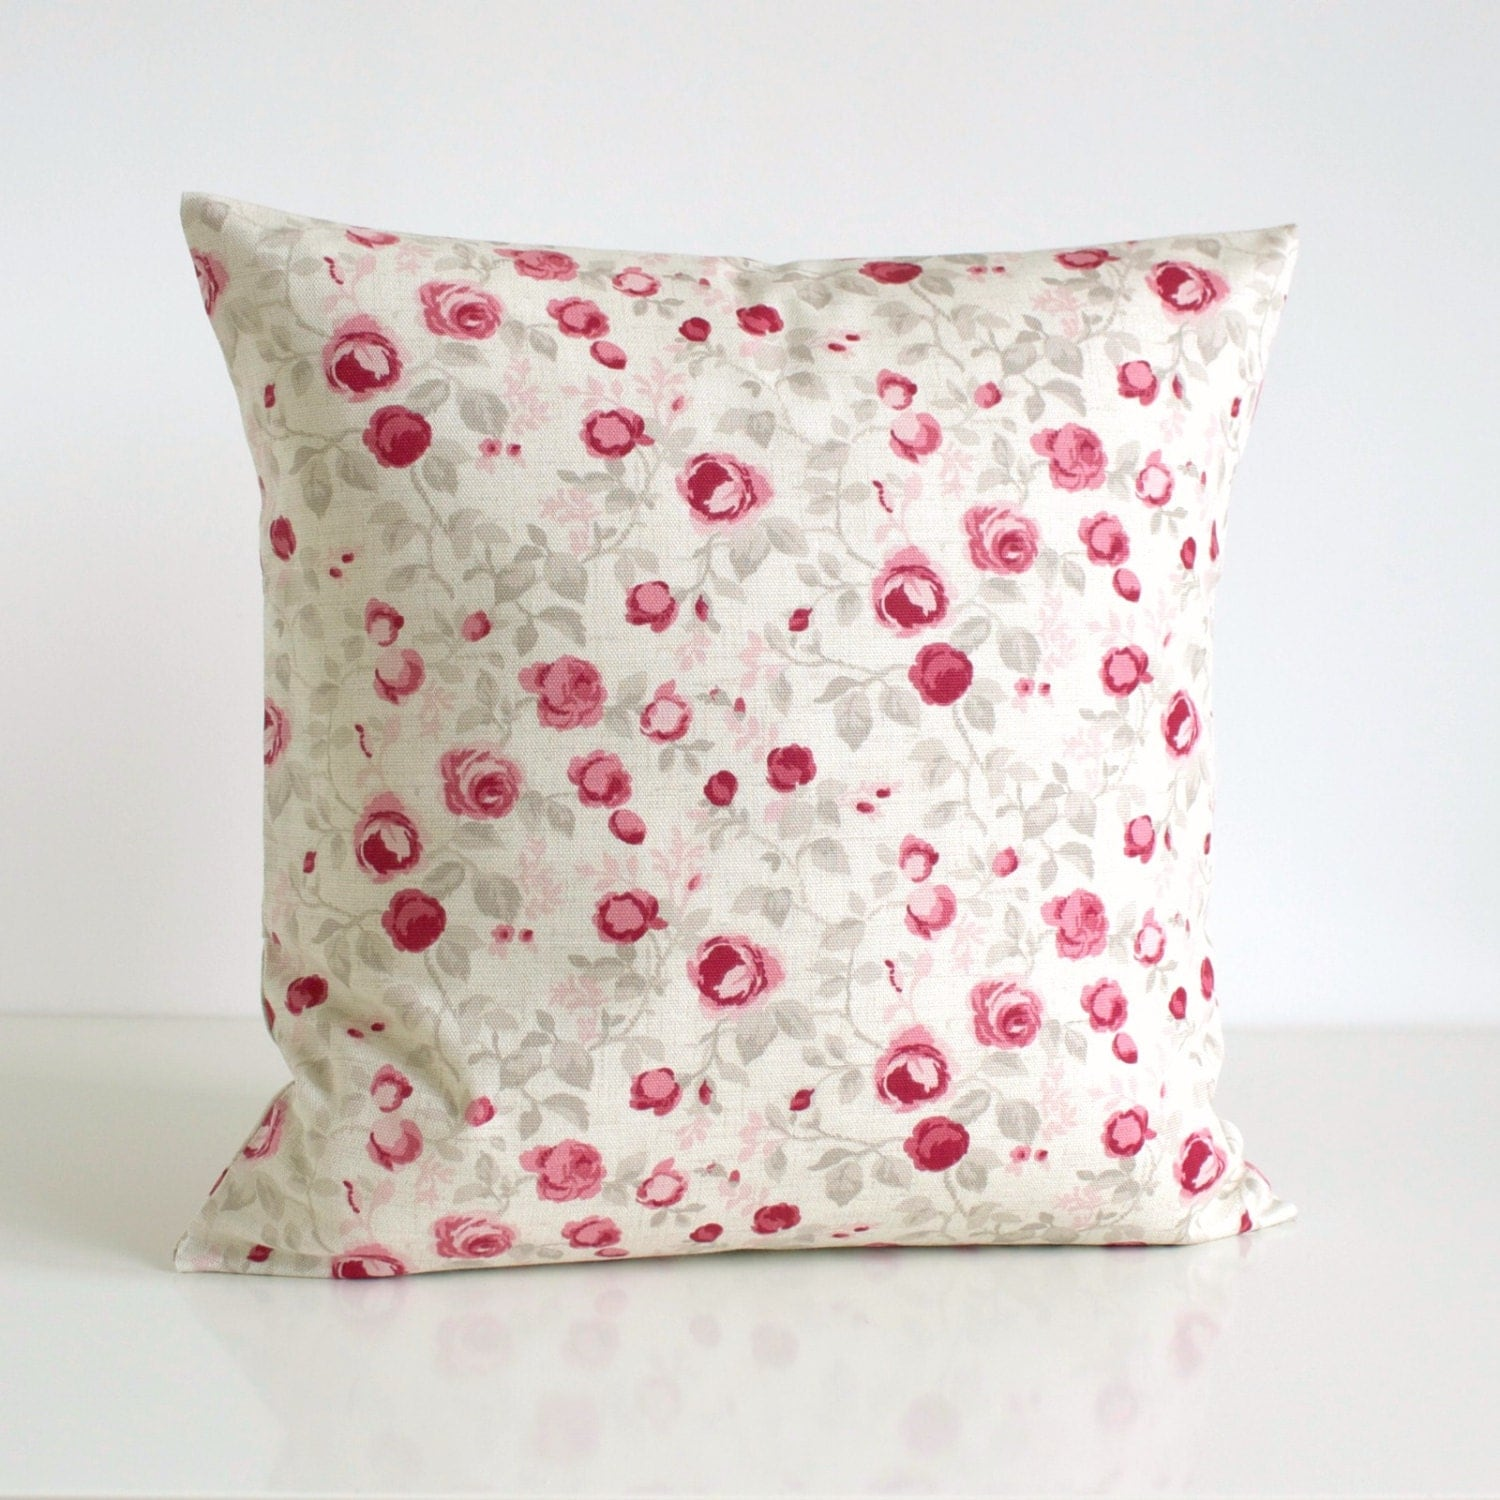 Decorative Pillow Cover Shabby Chic Cushion Cover by CoupleHome